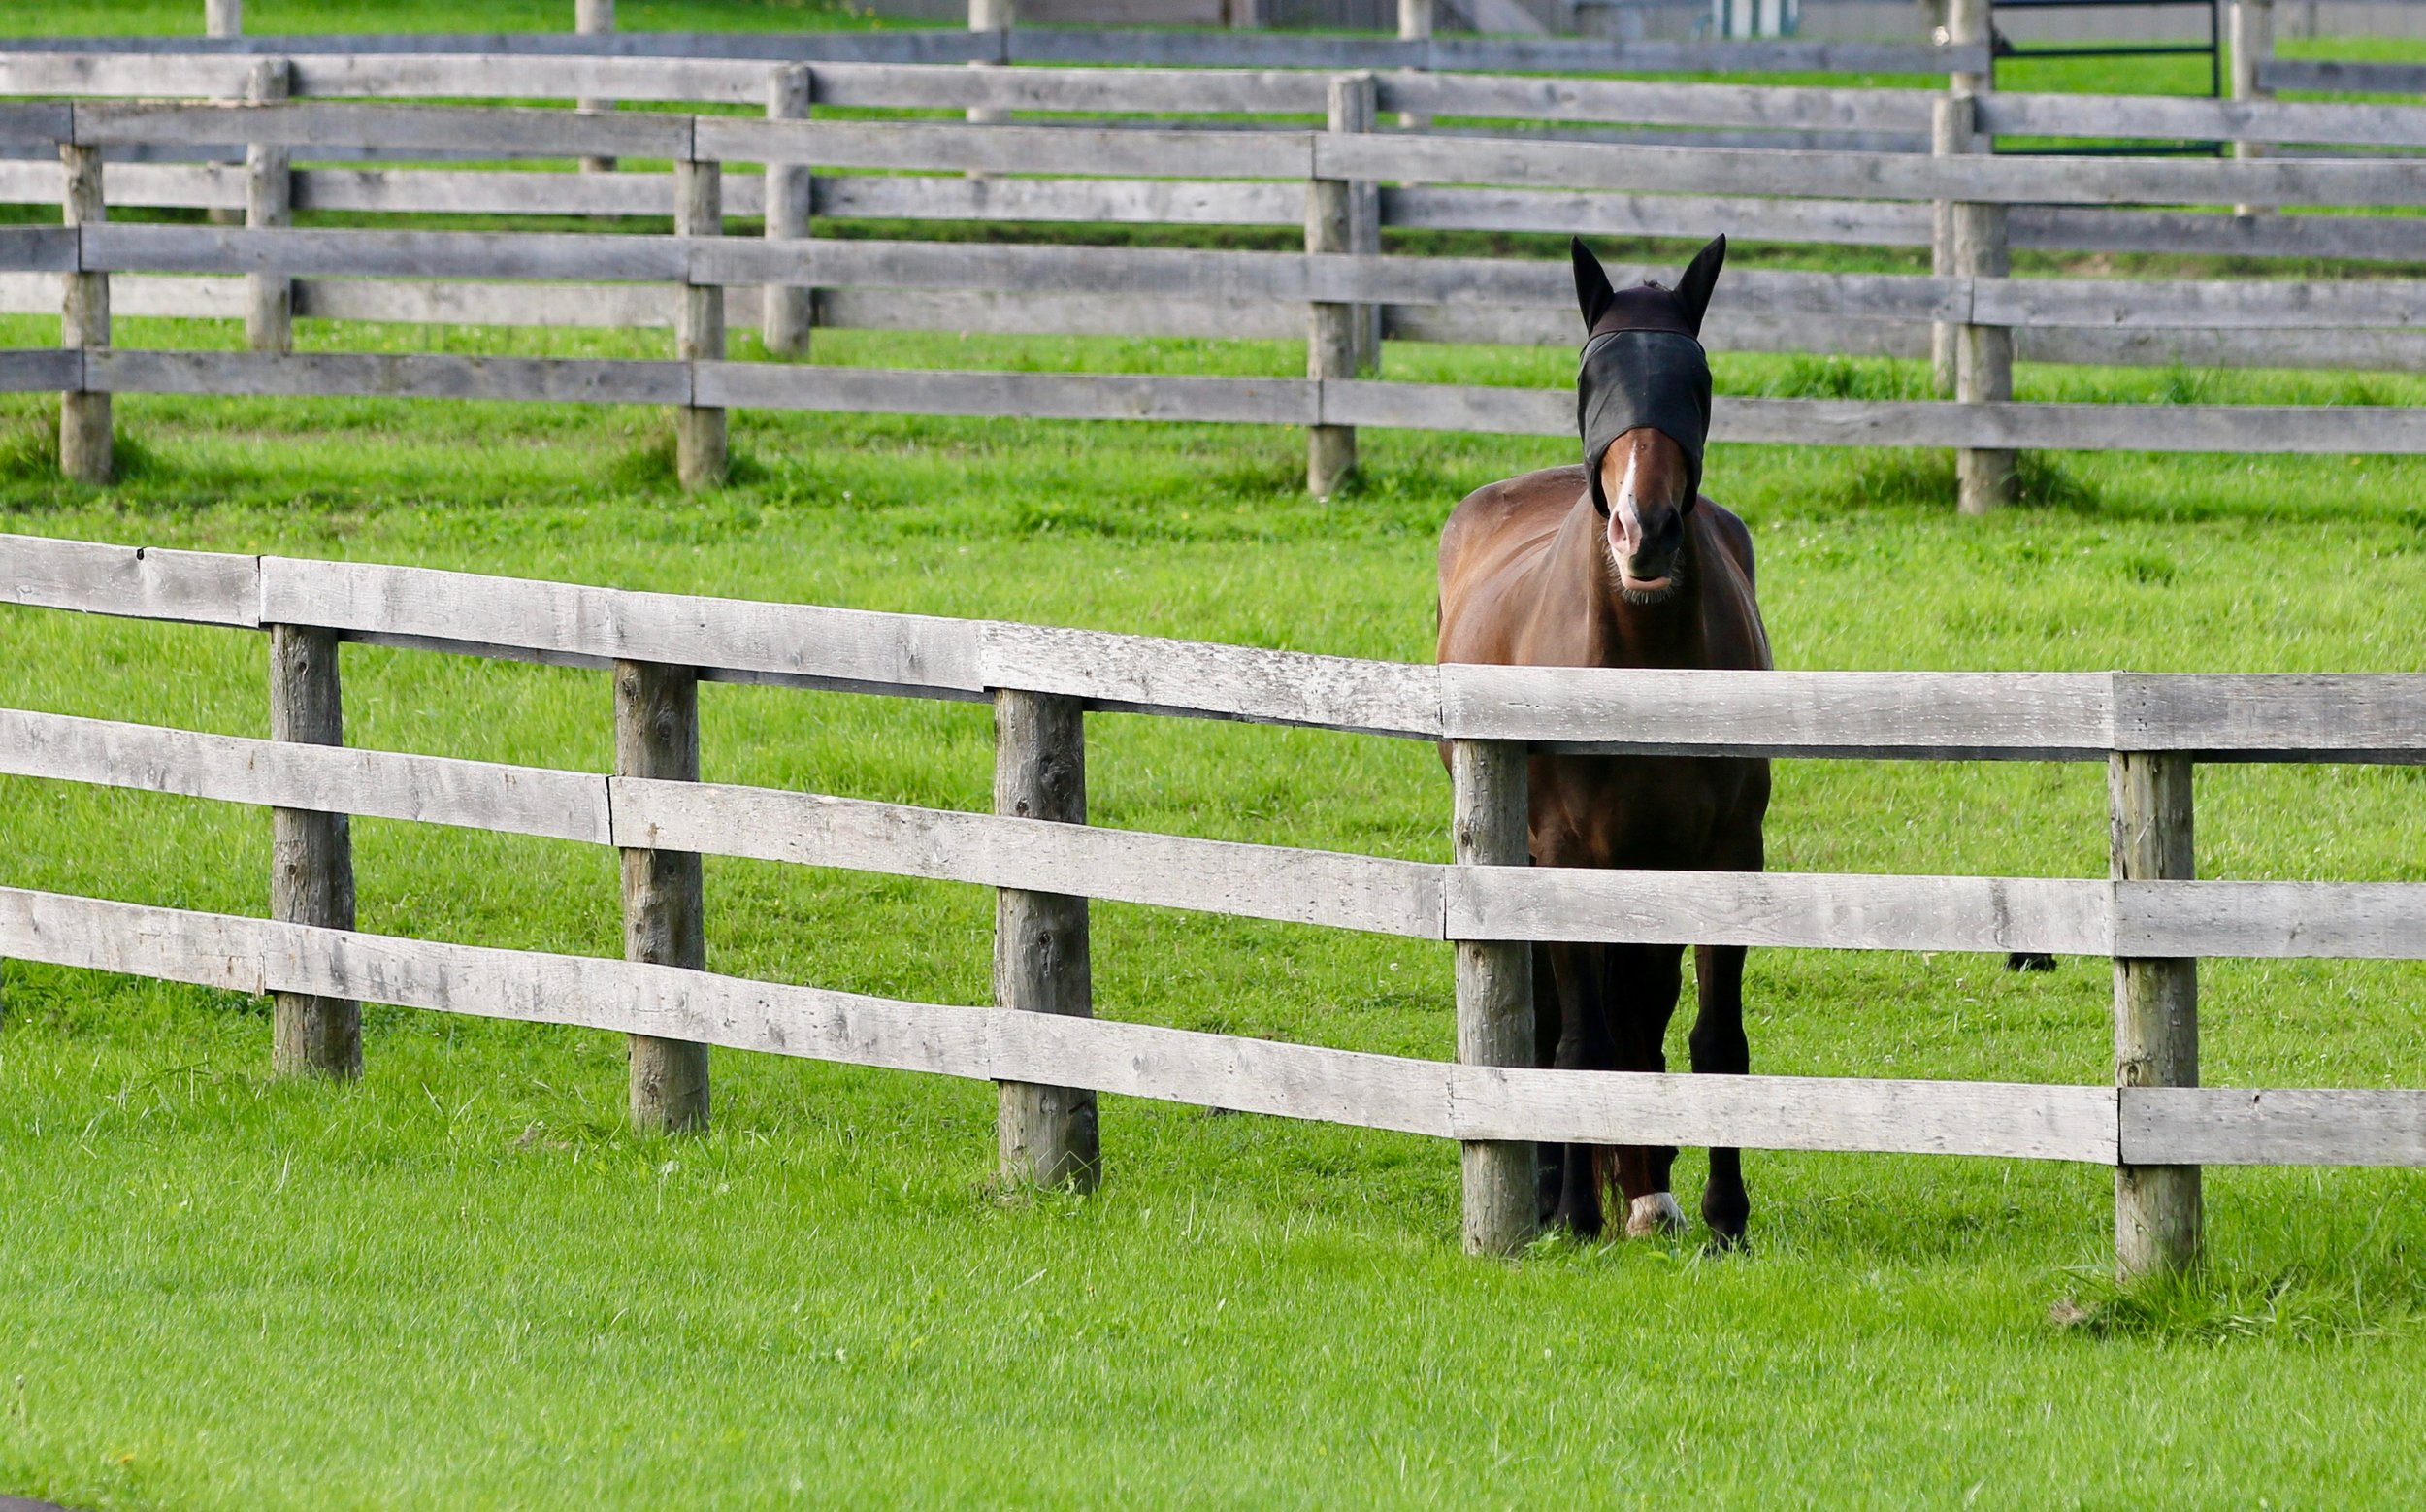 Paddocks - Fresh water 24/7 year-round & green grass paddocks for daily individual and group turnout. Paddocks are seeded with pasture mix to allow for a consistent supply of green grass throughout the season. Management employs a paddock rotation system to ensure optimal grazing opportunities for all areas. The property has brand new three-board fencing and safe gateways.